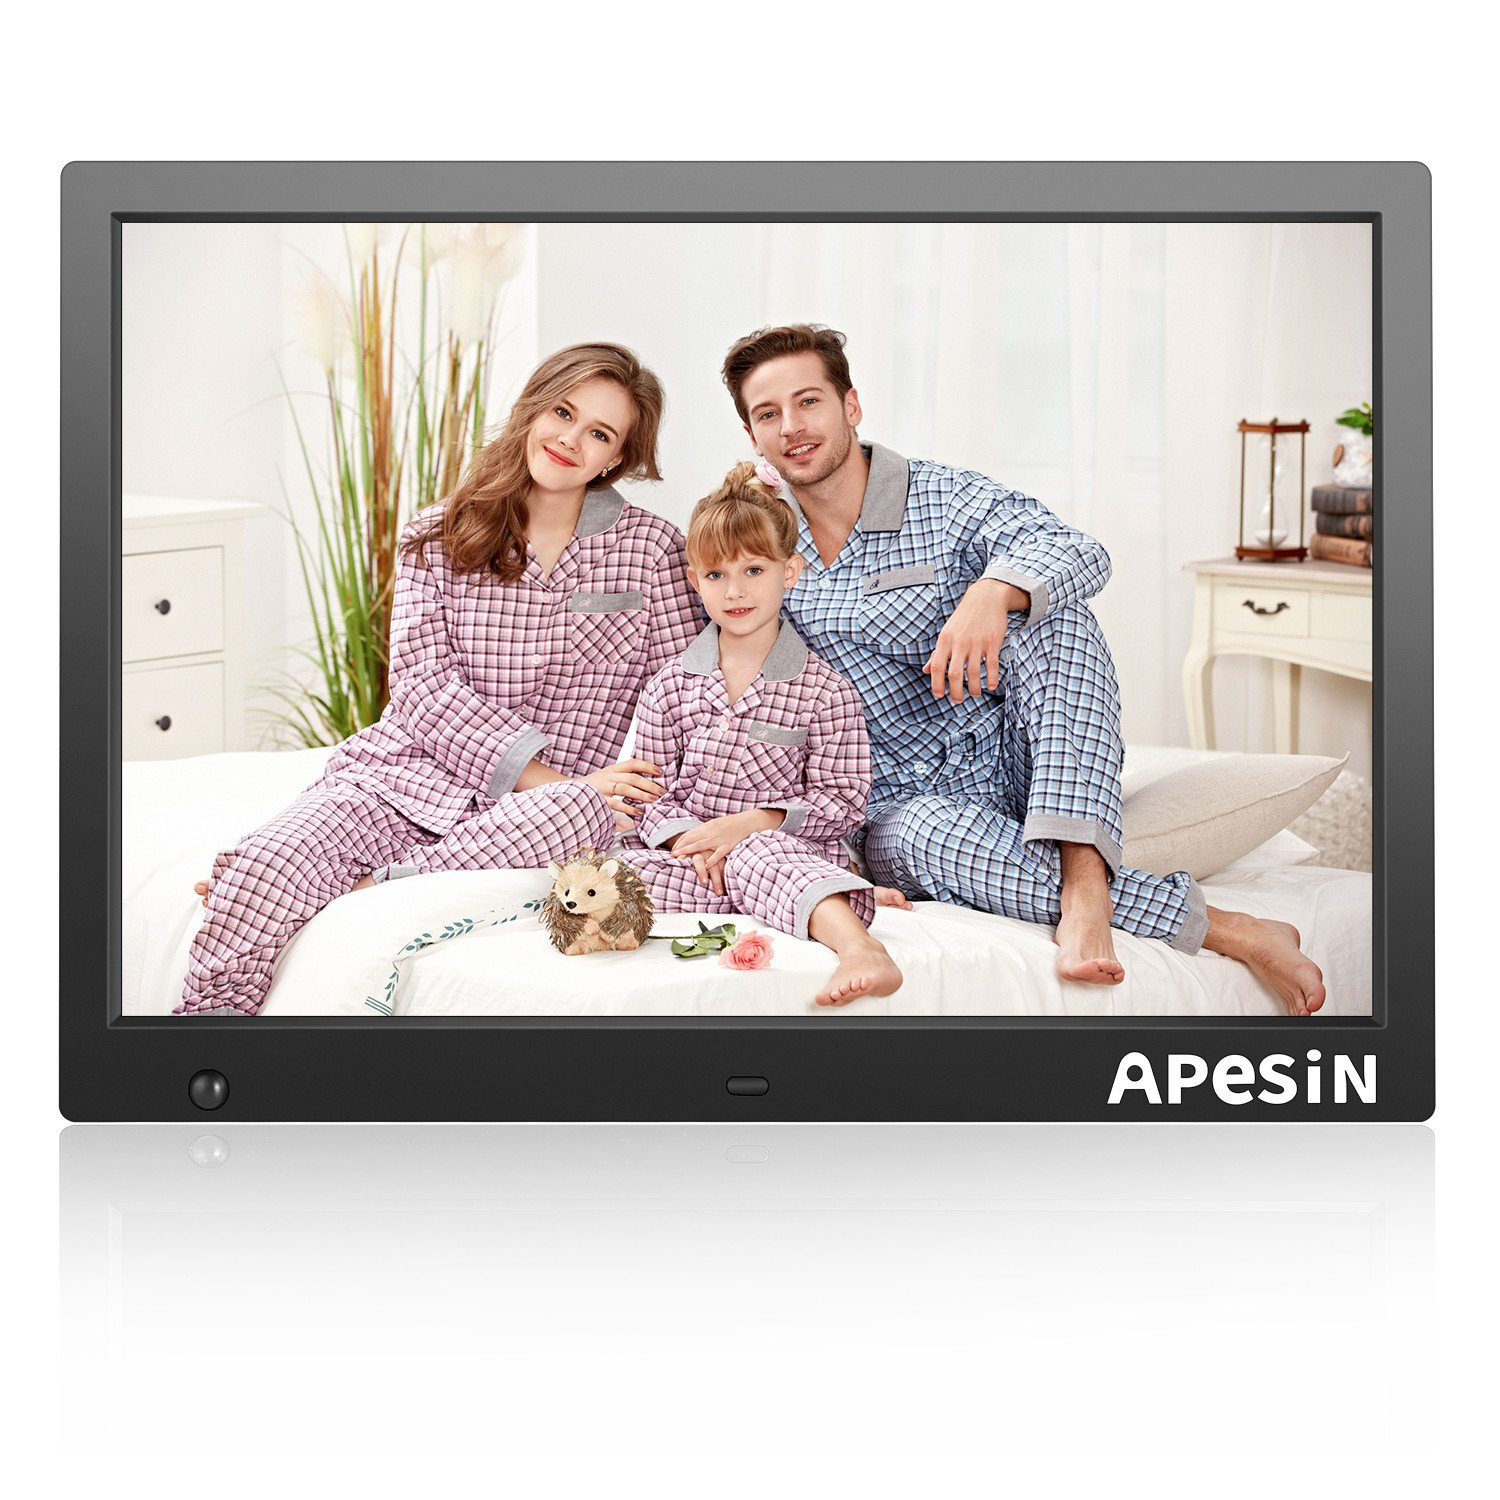 Digital Picture Frame, APESIN 14.1 Inch HD Screen with Motion Sensor(Black) by APESIN